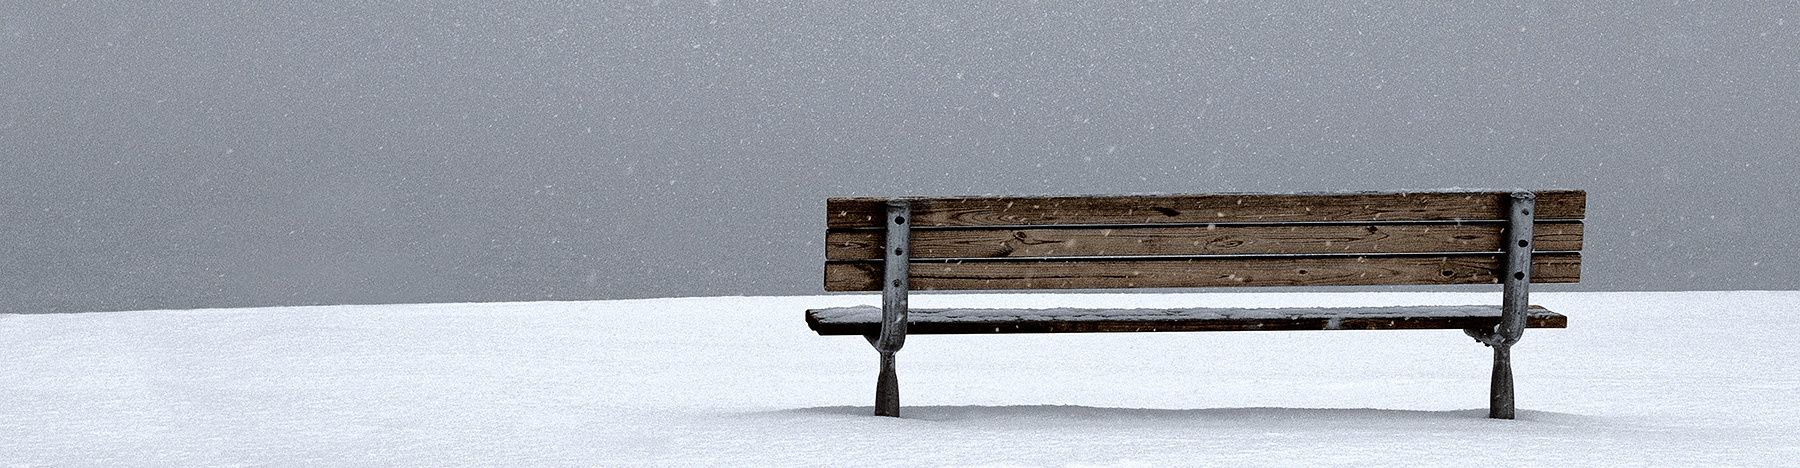 101_bench_winter.jpg